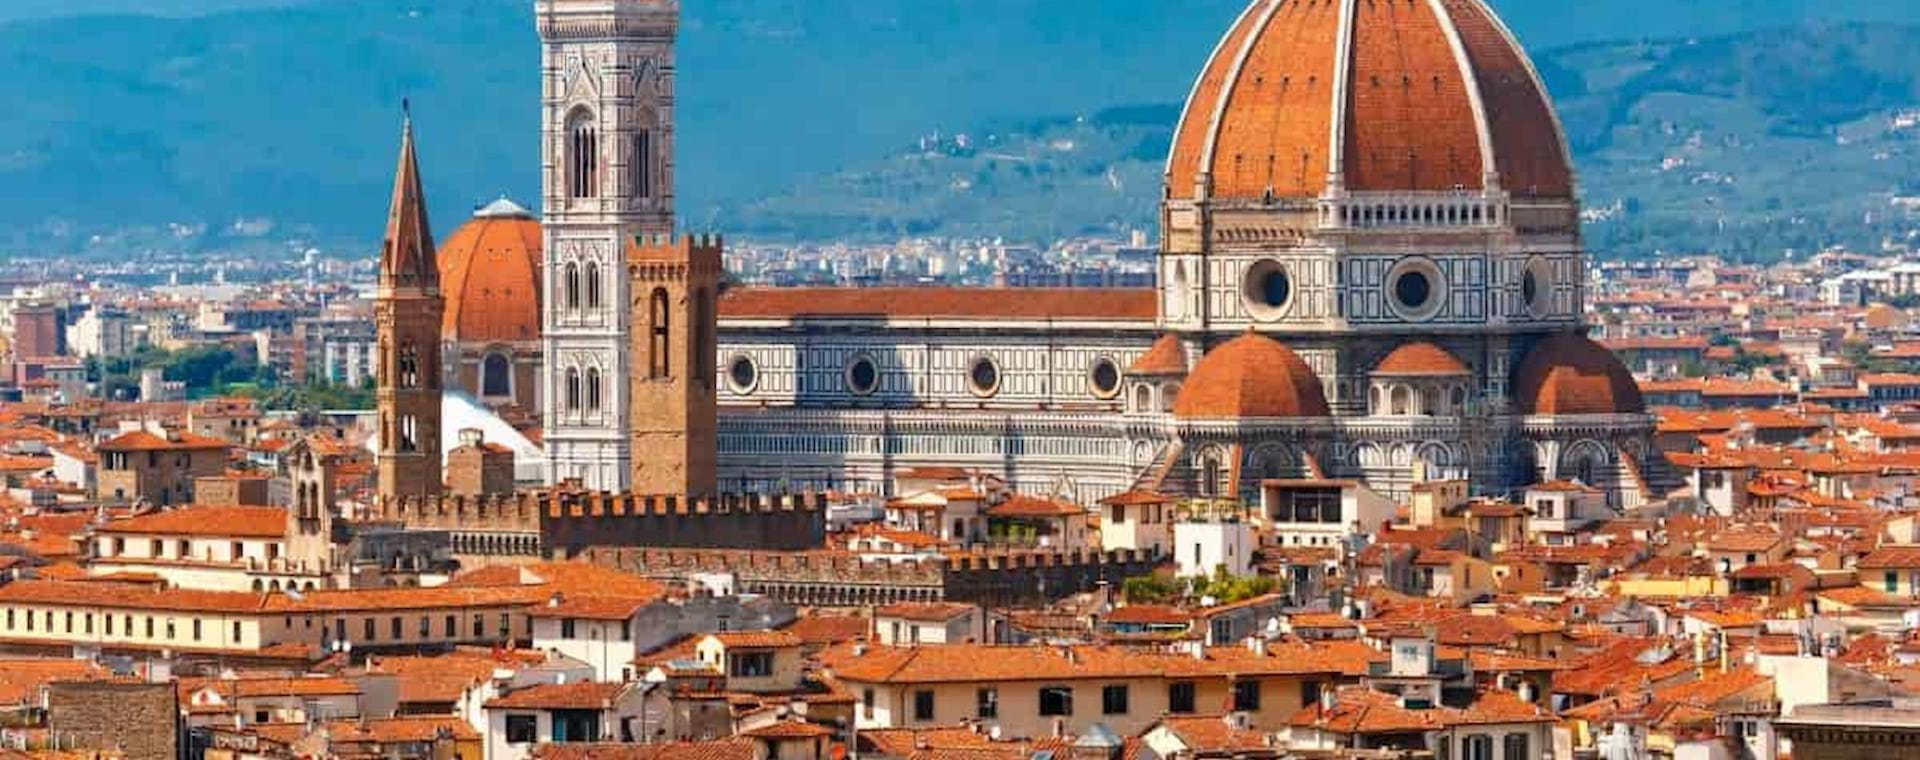 panoramic view of florence Cathedral